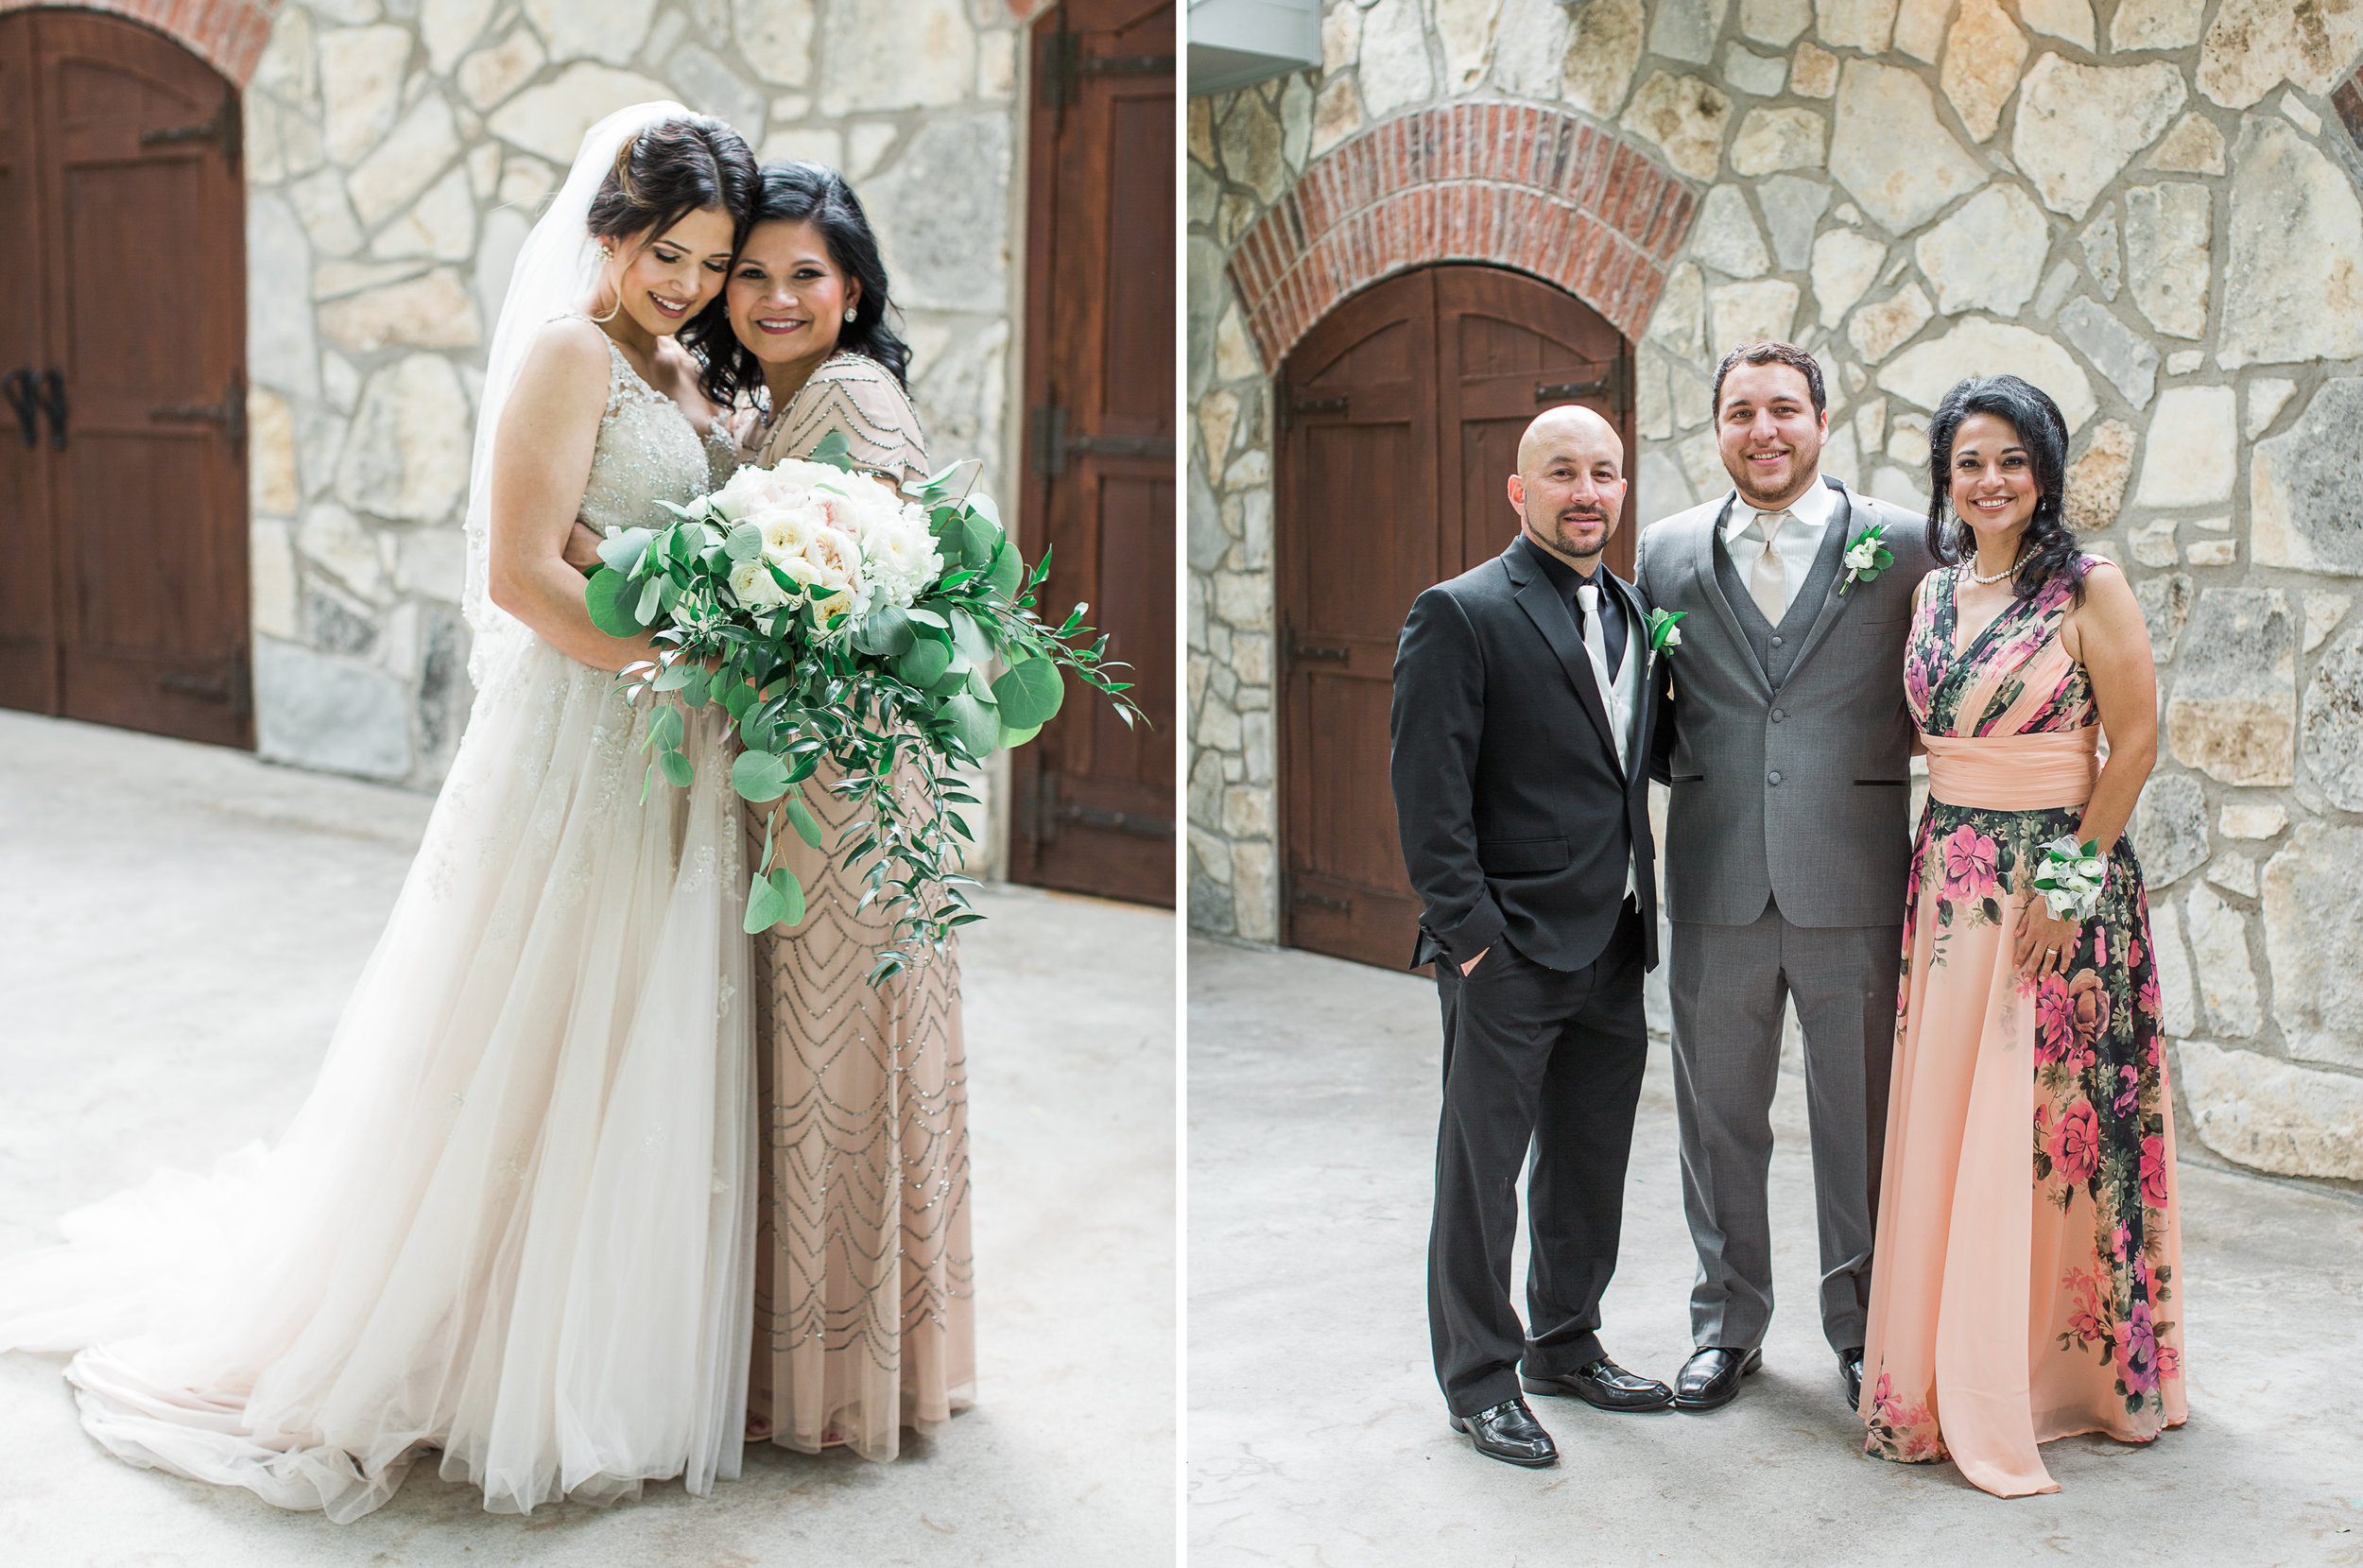 Elegant Spring Vineyard Wedding | Film Wedding Photographer | Austin Wedding Photographer | Sweet Wedding Day Moments with Parents | Britni Dean Photography // britnidean.com